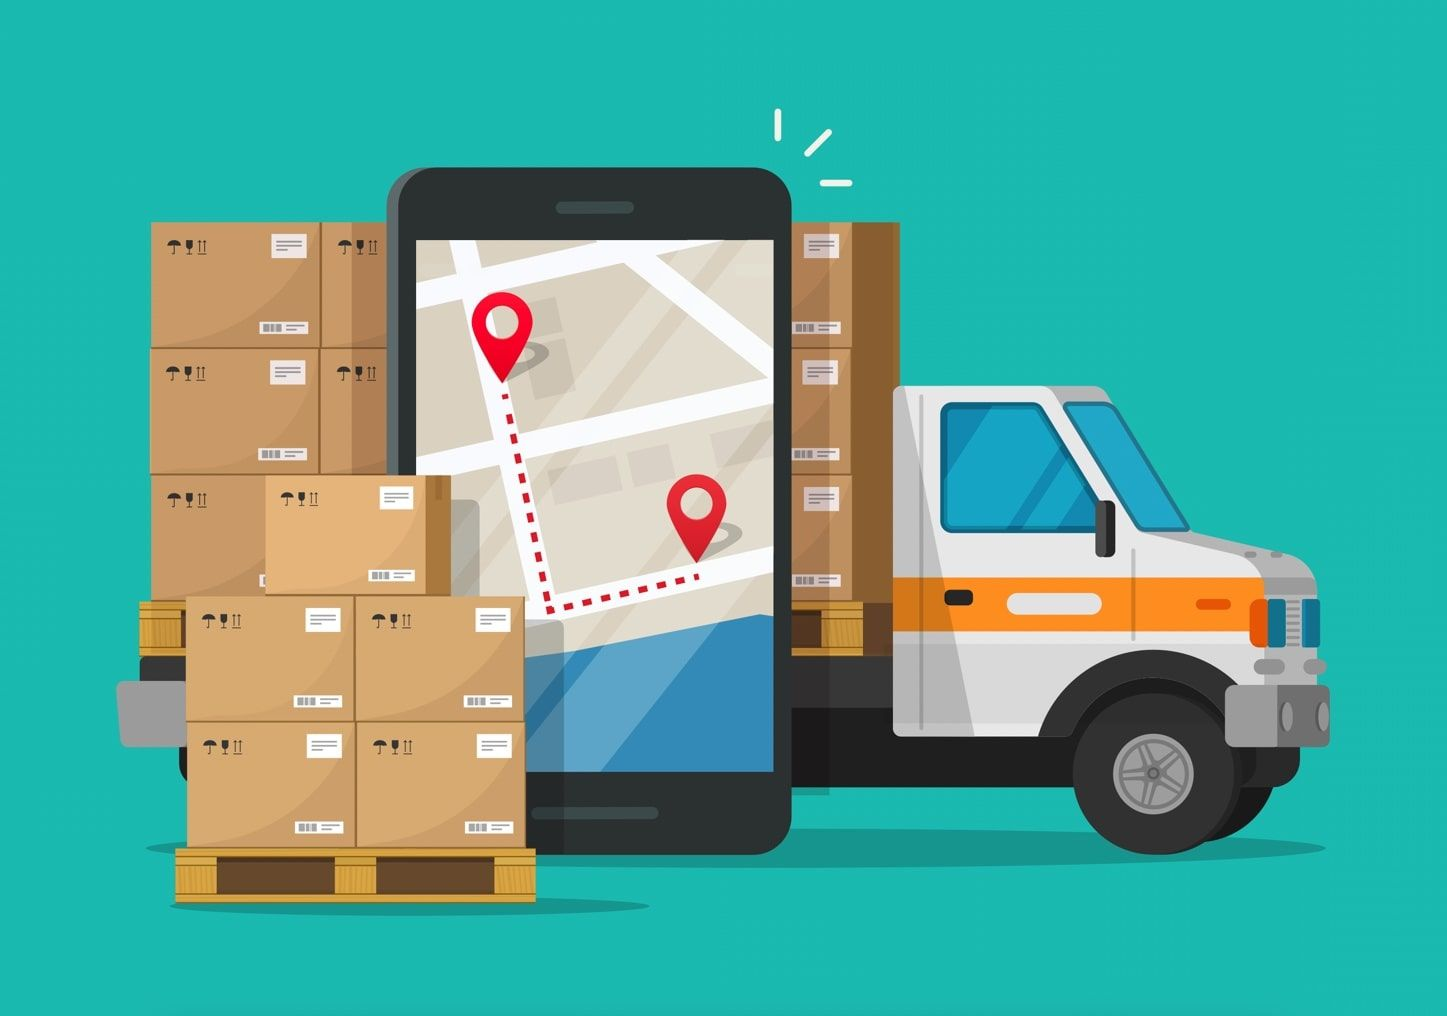 An illustration of a delivery truck, routing app and packages